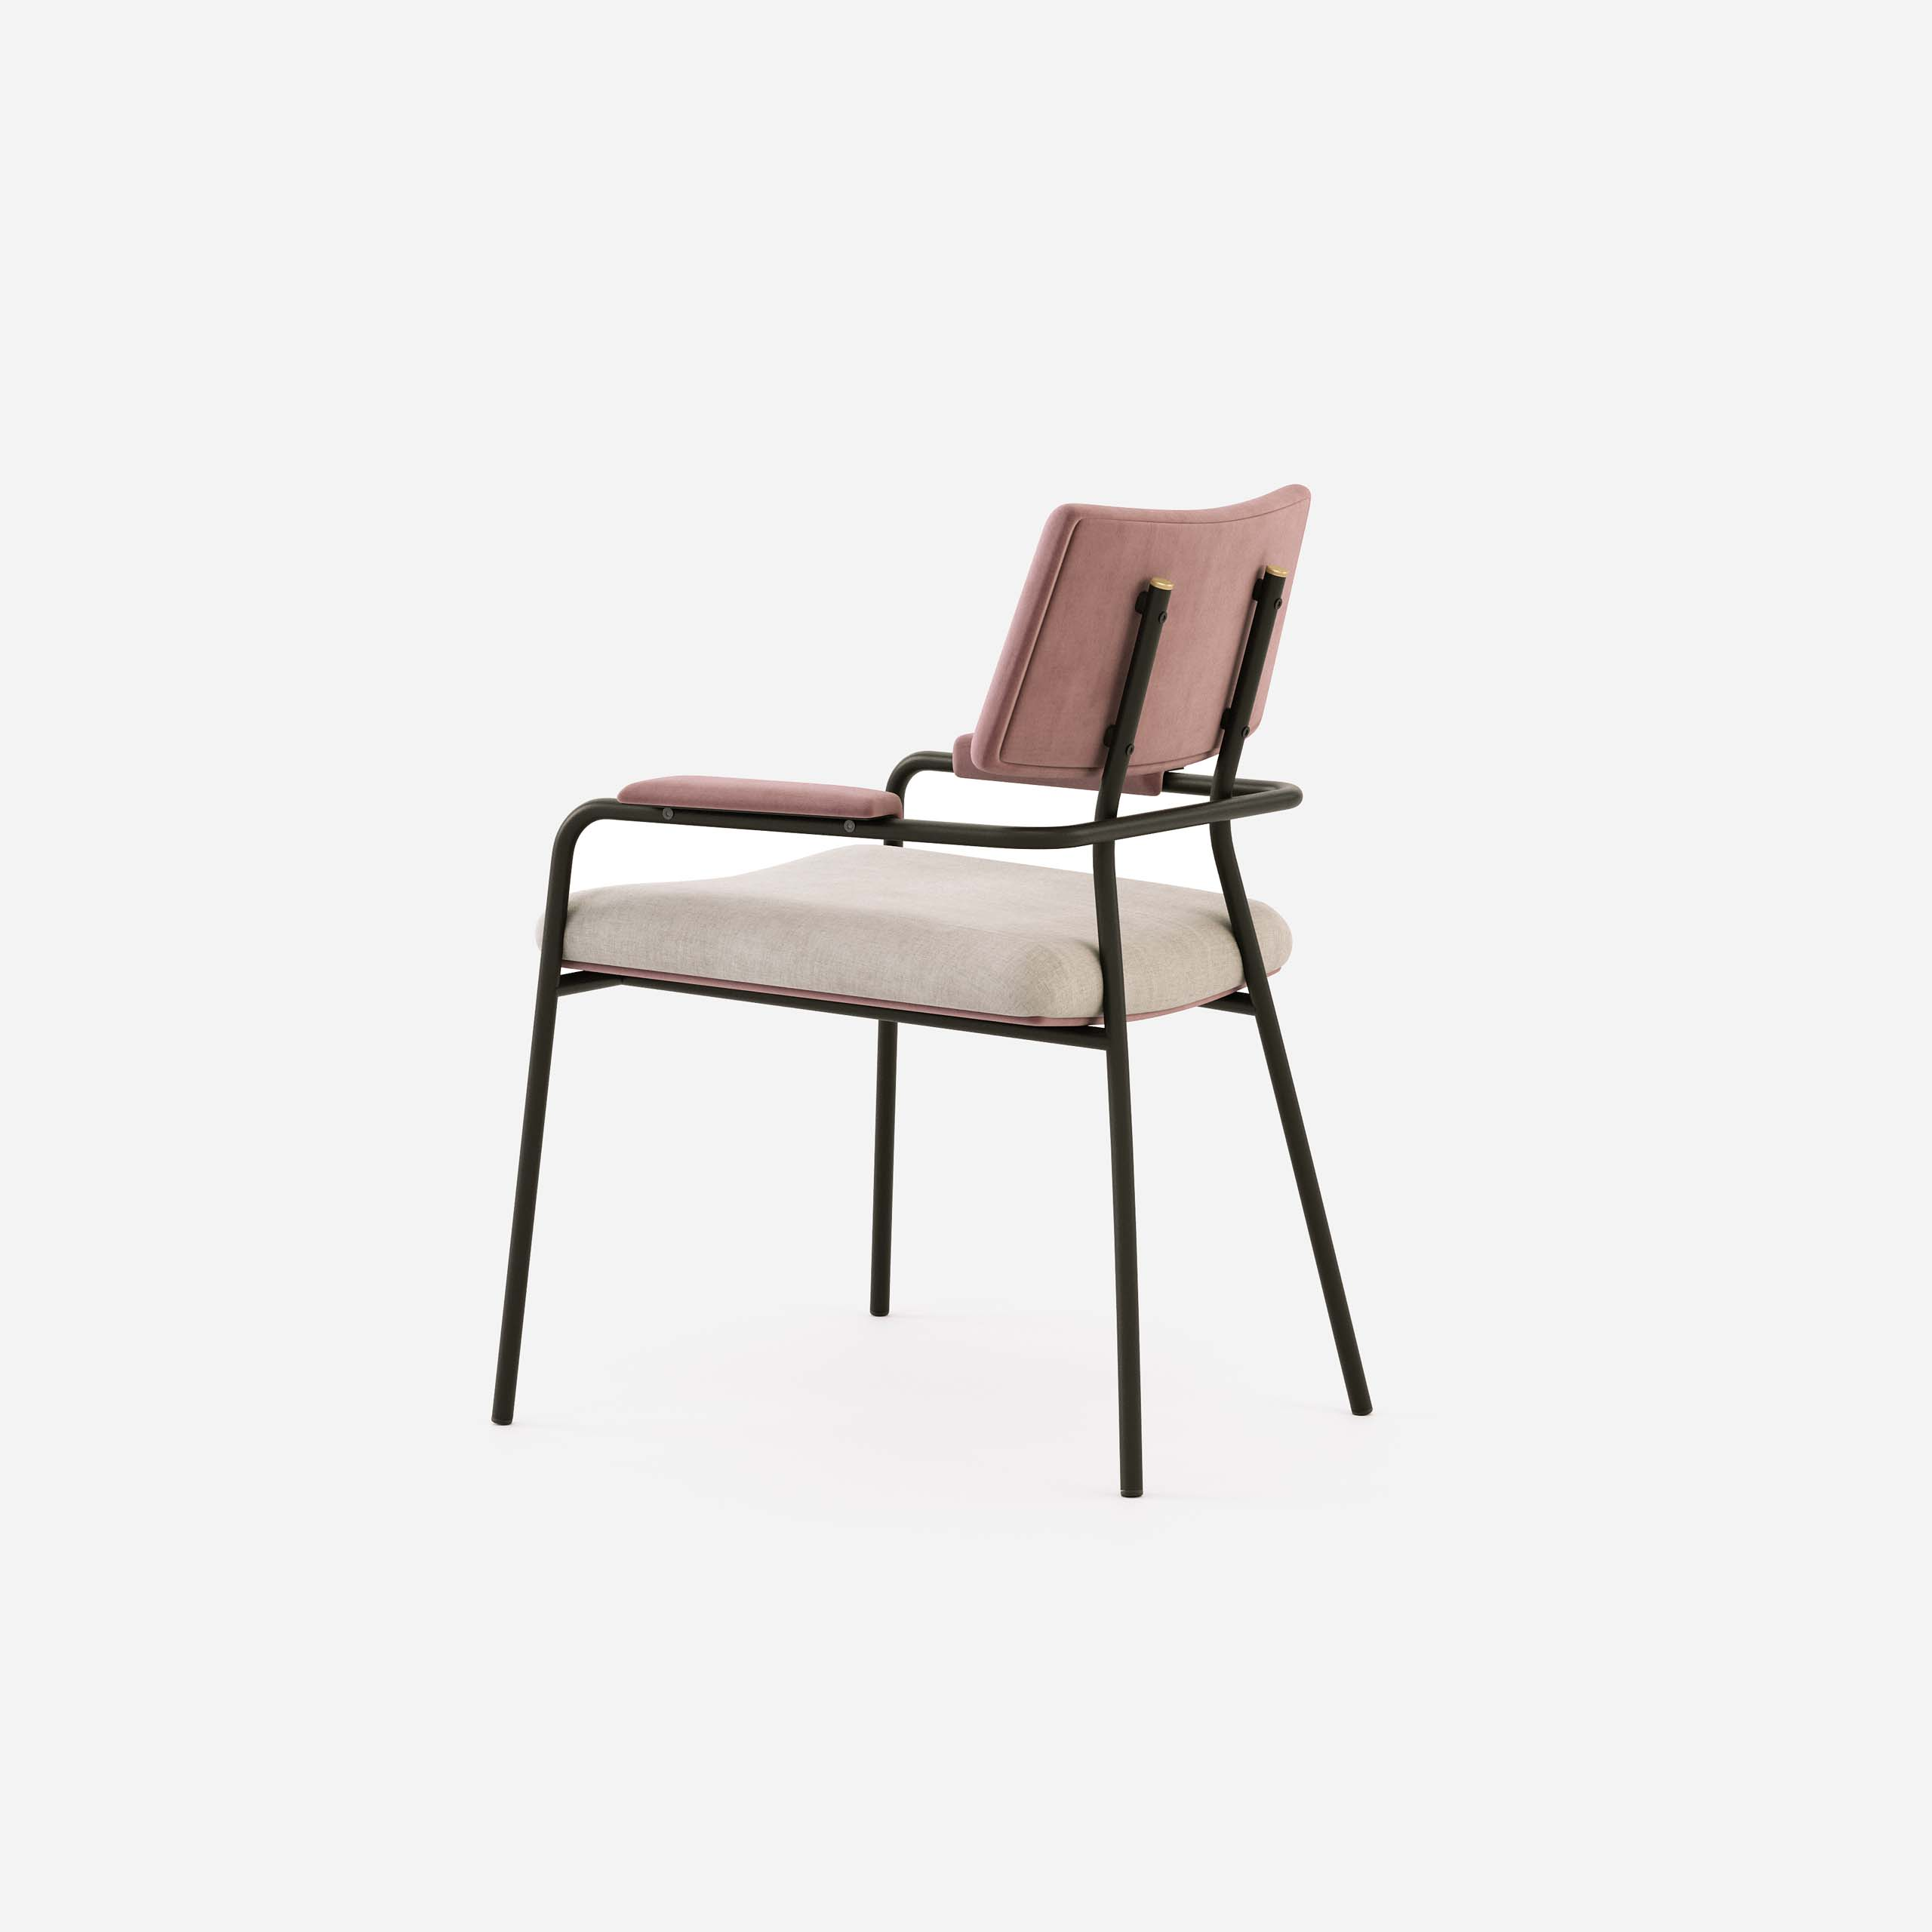 Stranger dining chair - domkapa new 2021 collection - dining room decor